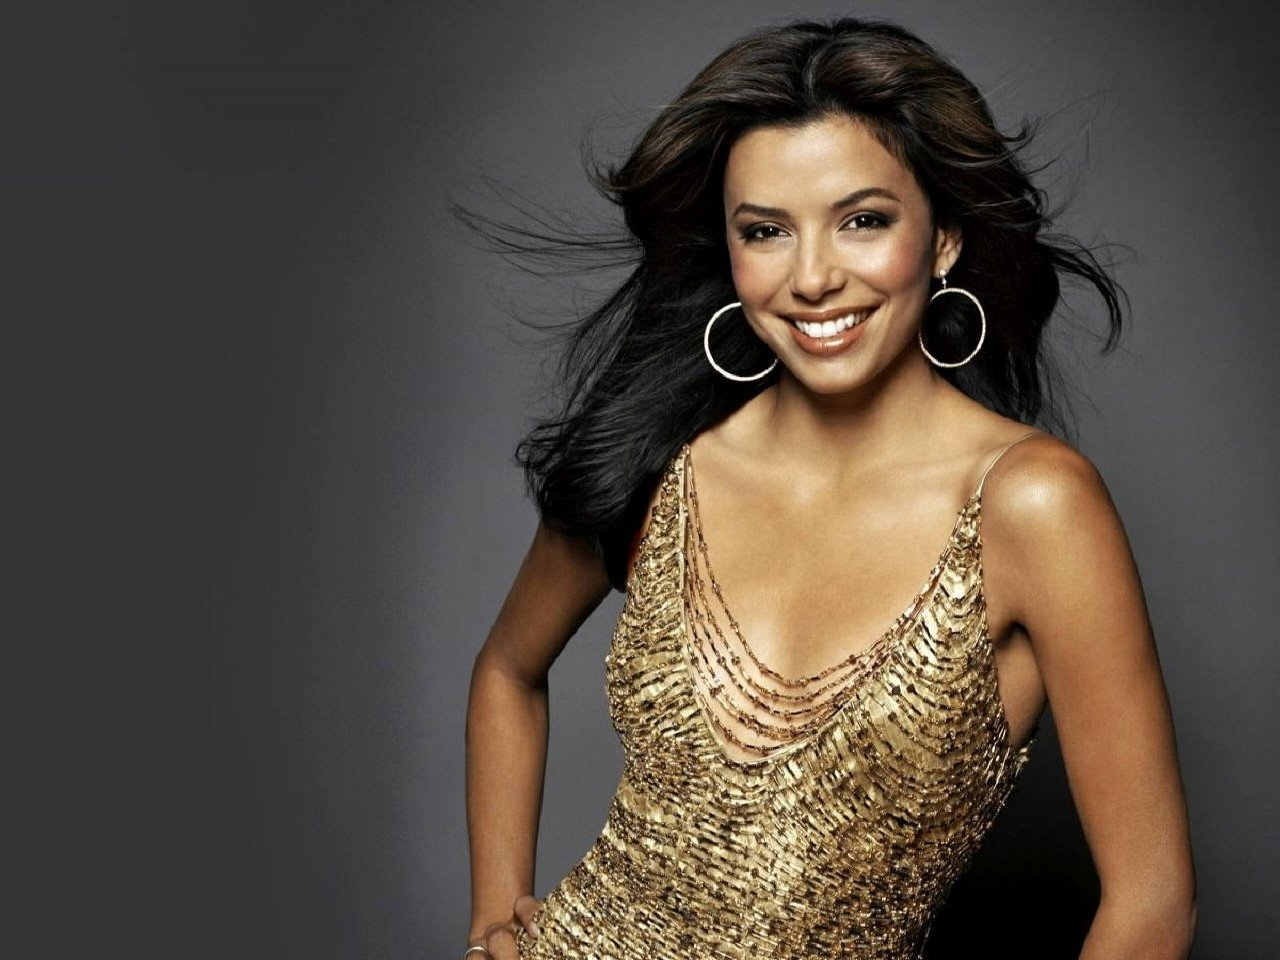 Wallpaper di Eva Longoria Parker - l'attrice interpreta la vulcanica Gaby Solis in Desperate Housewives